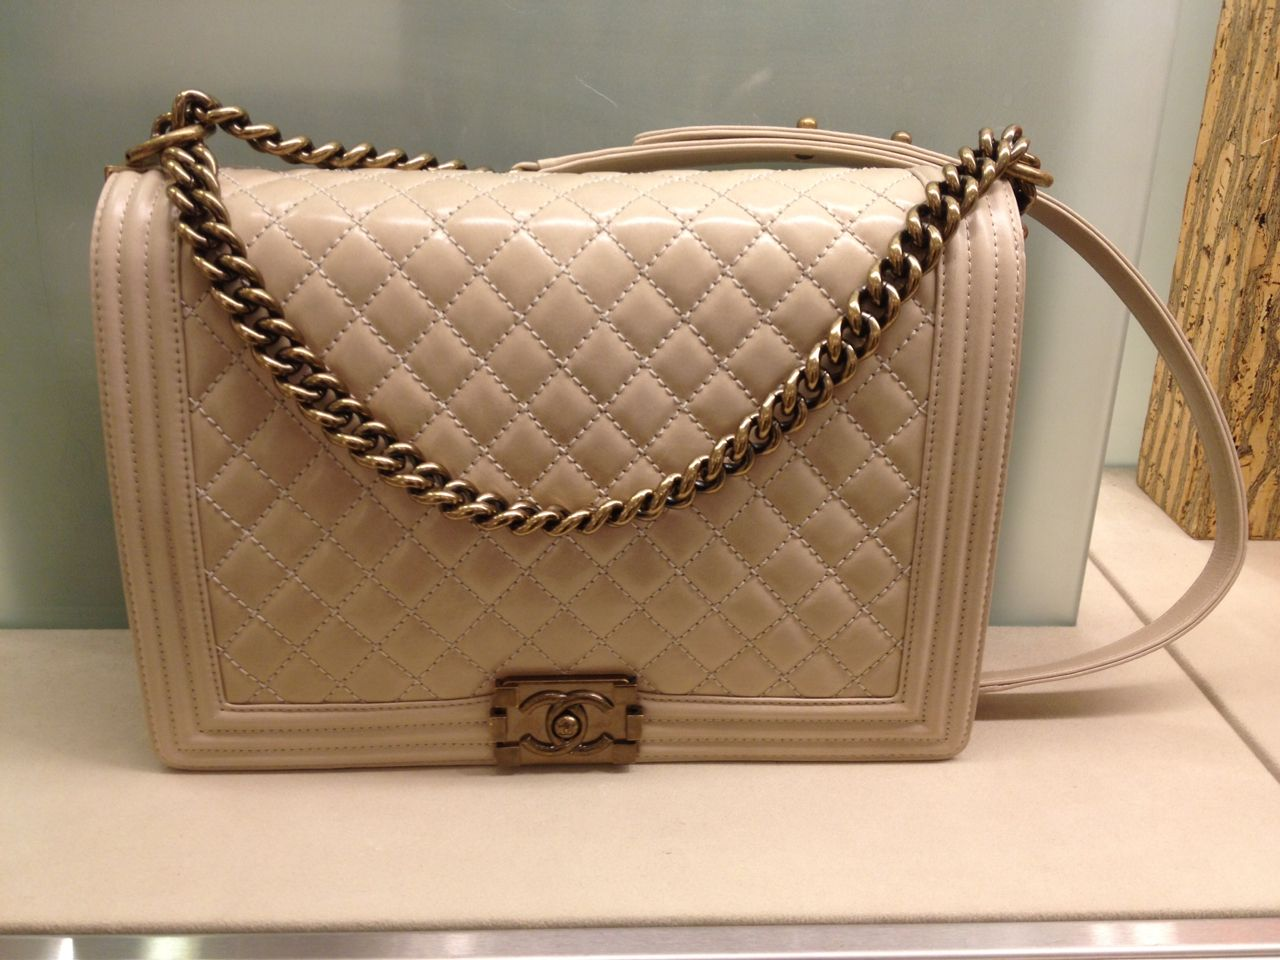 Chanel Boy Large creme - beautiful Chanel Boy Bag, Over The Shoulder Bags,  Large 2244921df86